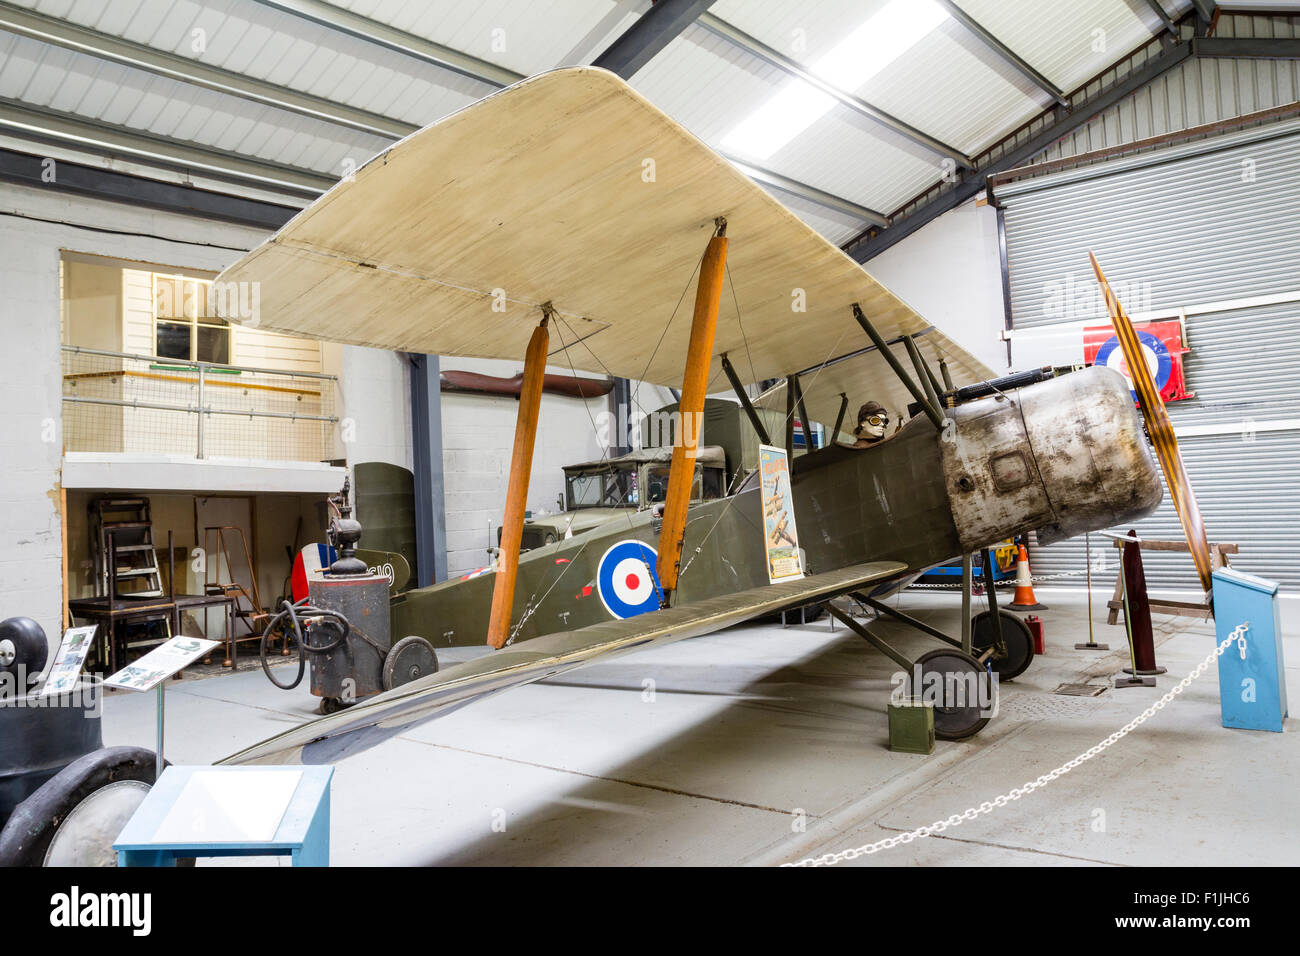 England, Manston Airfield Museum. Interior. Sopwith Strutter bi plane, side view. HDR photo realistic. - Stock Image